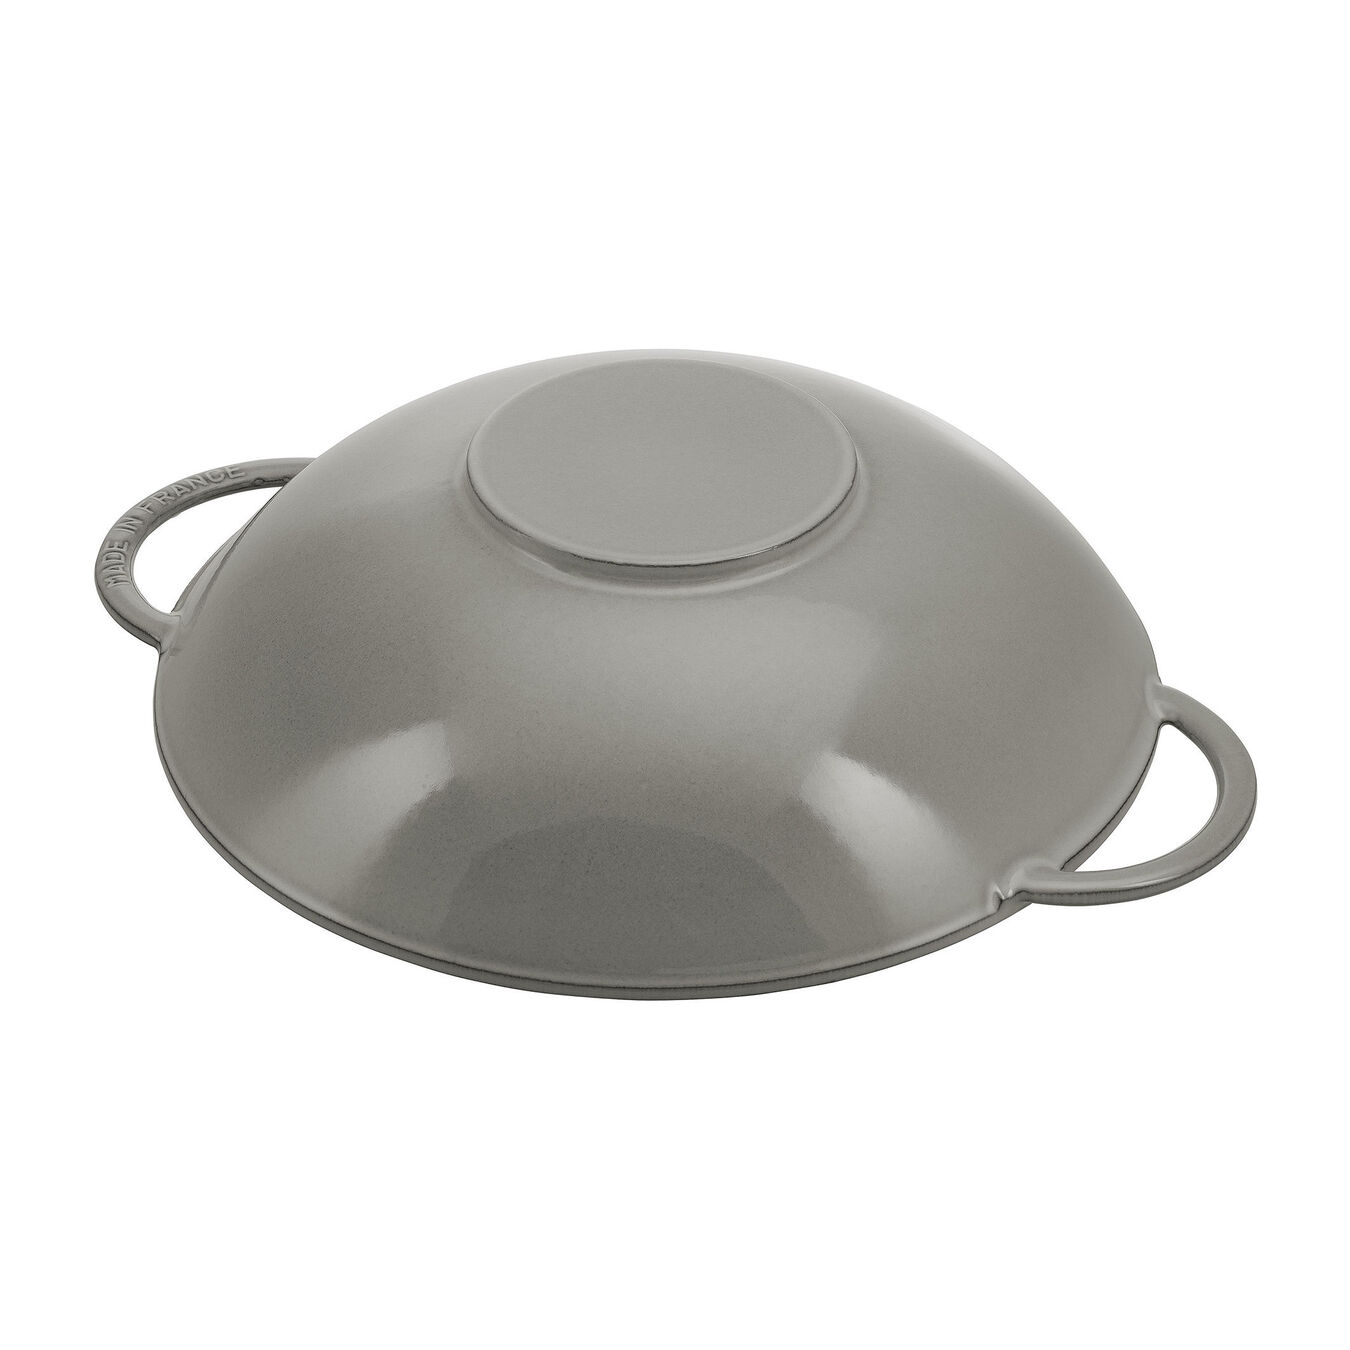 37 cm / 14.5 inch Cast iron Wok with glass lid, Graphite-Grey,,large 4